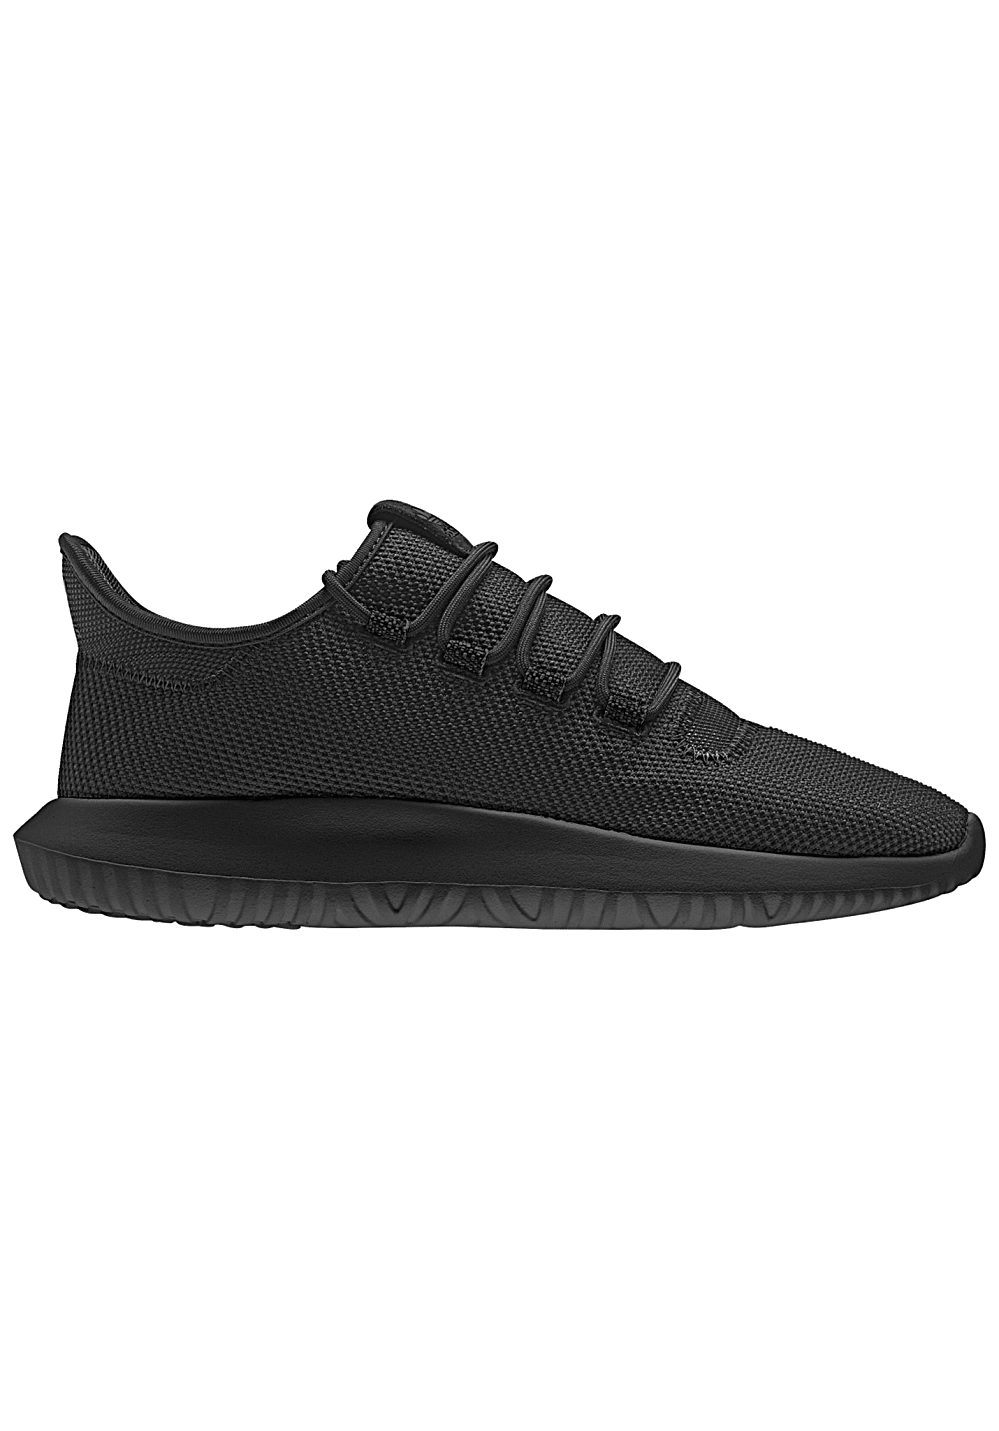 adidas Originals Tubular Shadow Sneaker für Herren